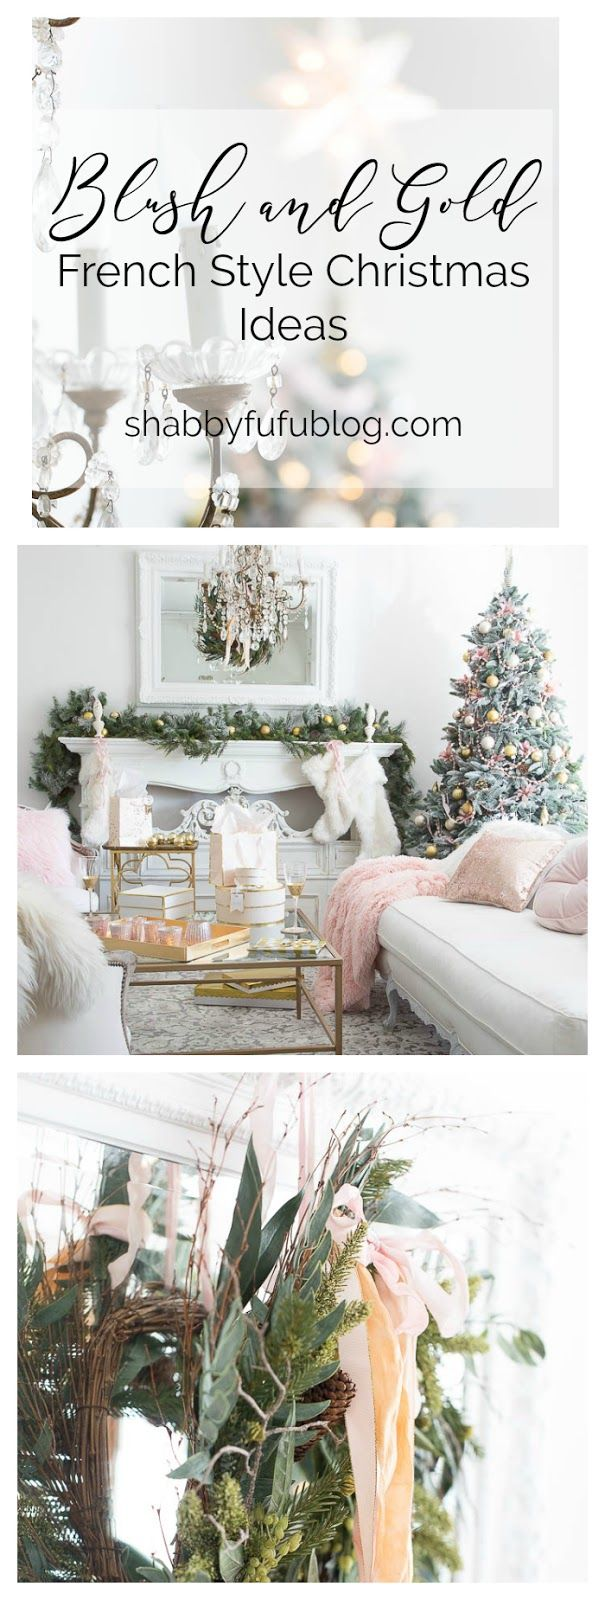 Christmas Home Tour Holiday Housewalk - Blush and Gold  #blushpink #ChristmasDecor #christmasdecorating